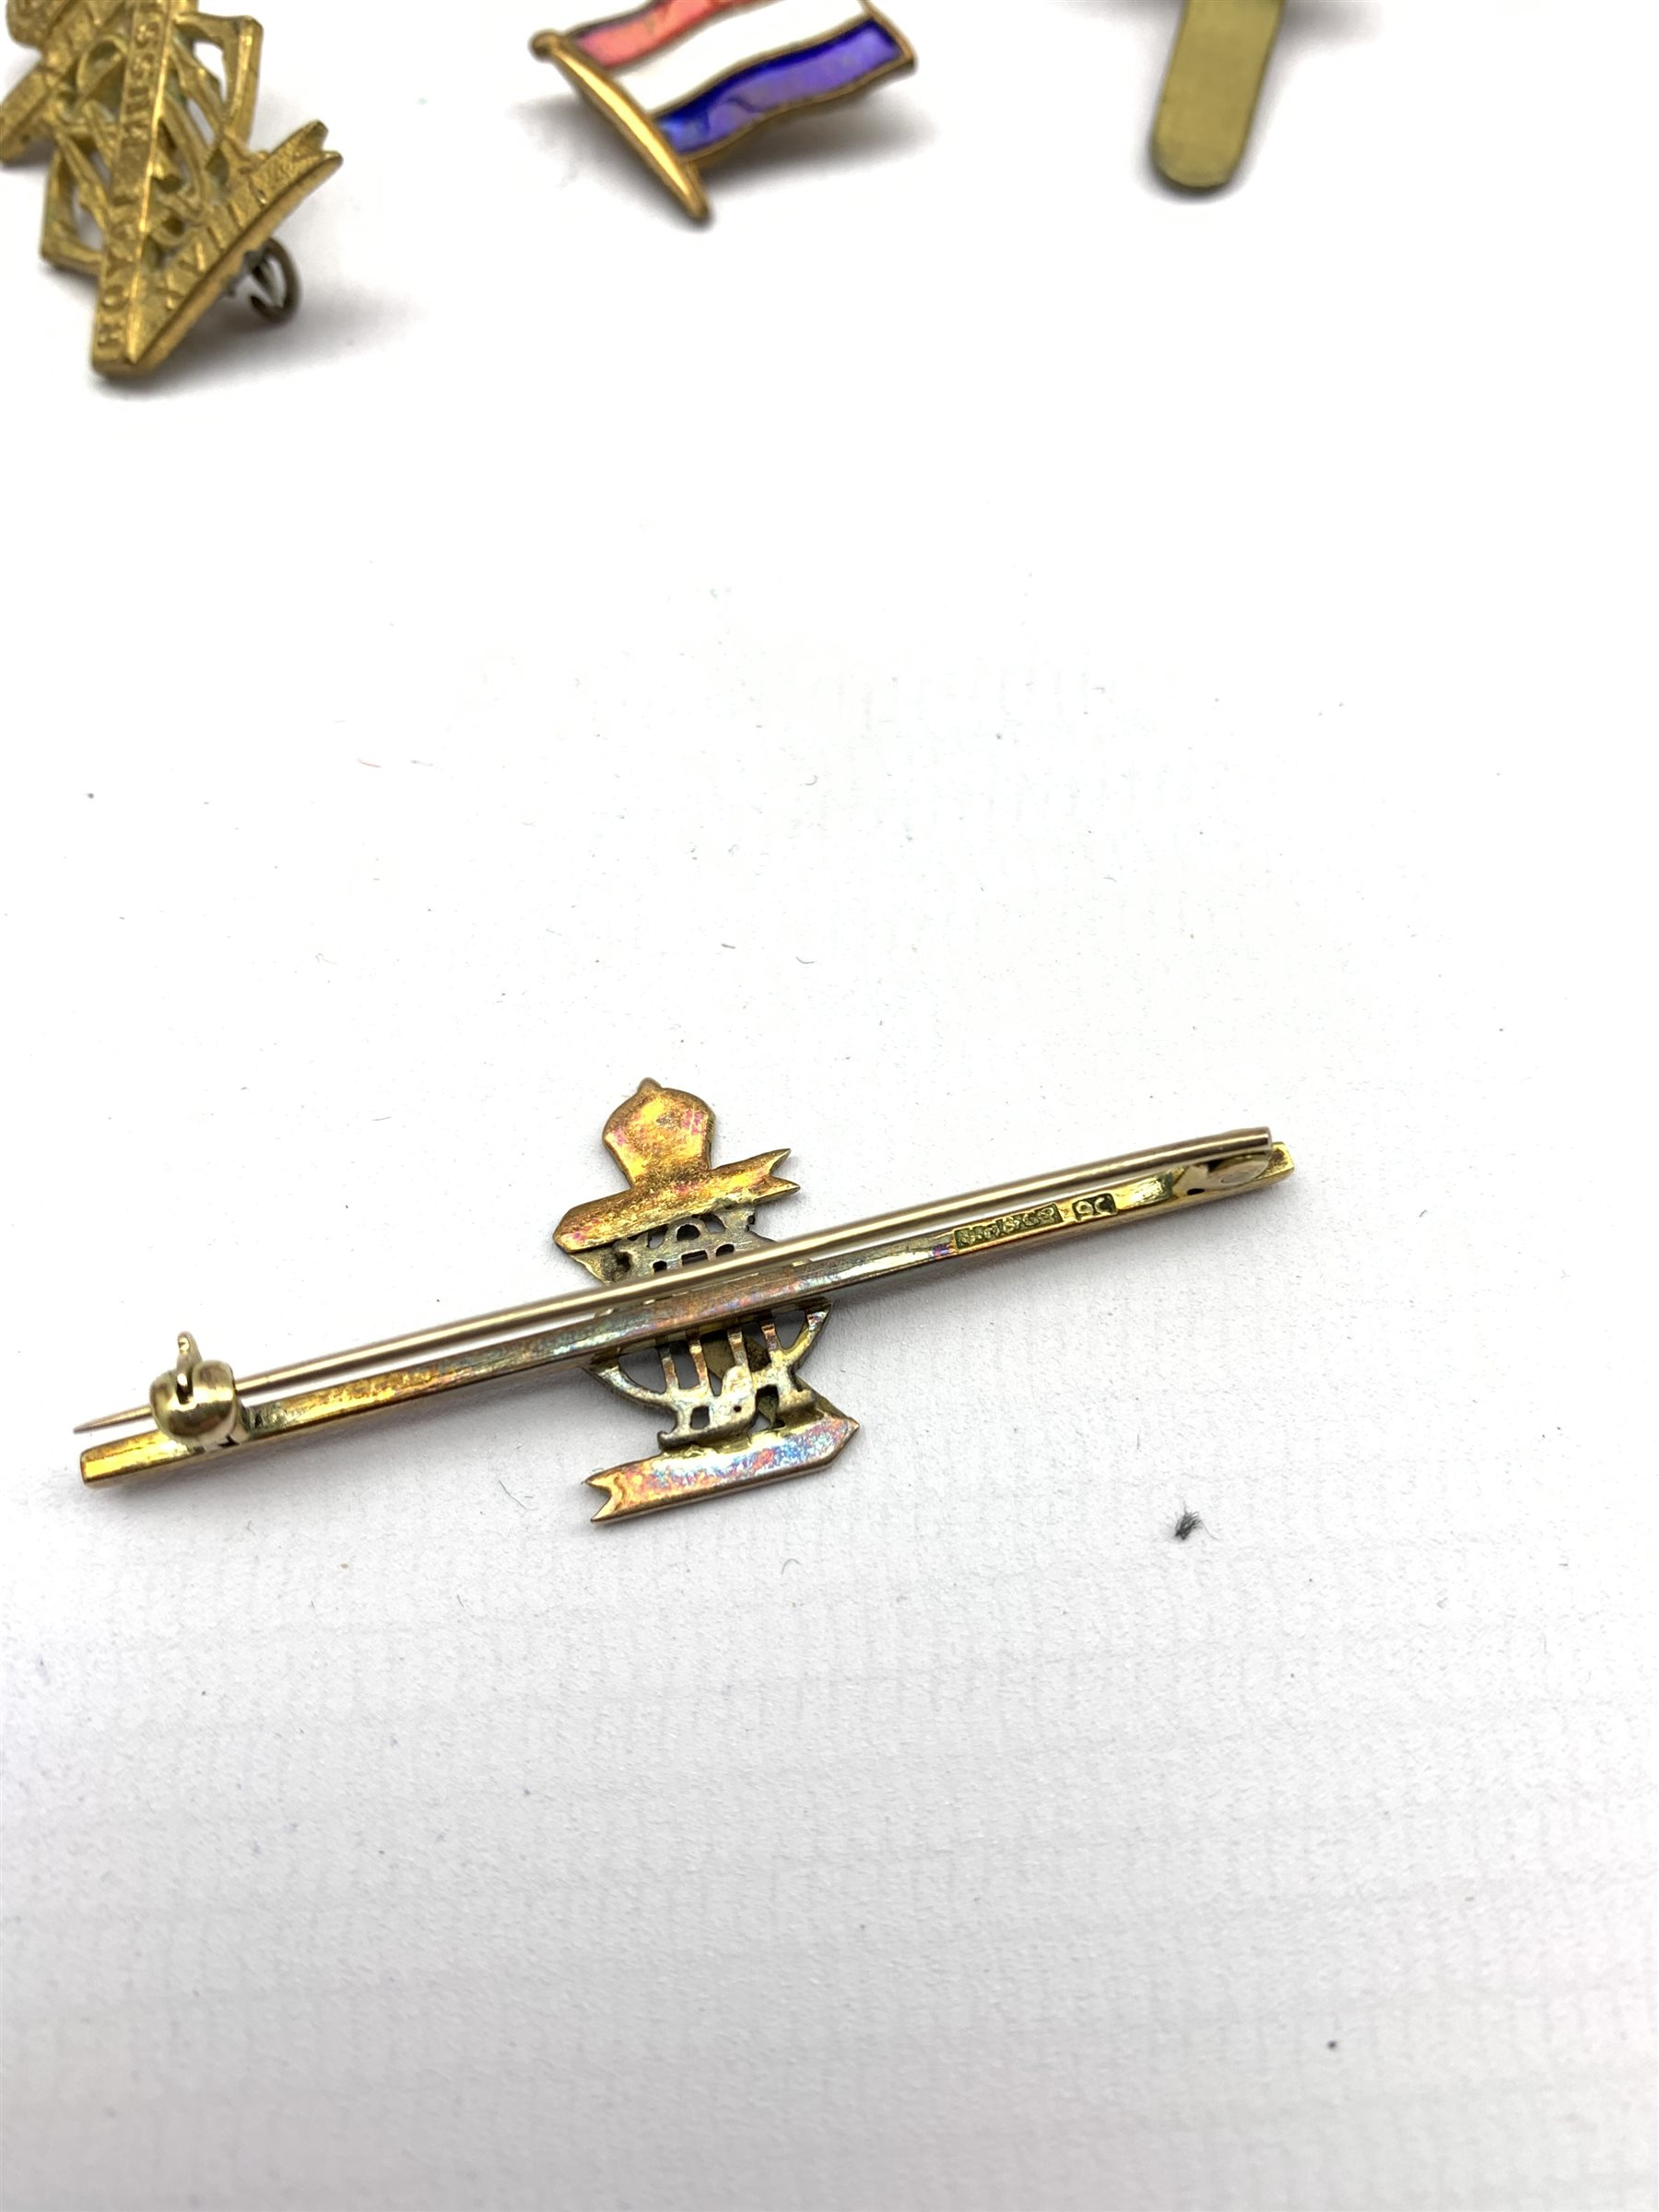 9ct gold and blue enamel brooch for XIII-XVIII Royal Hussars , four other Hussars brooches and clips - Image 3 of 15